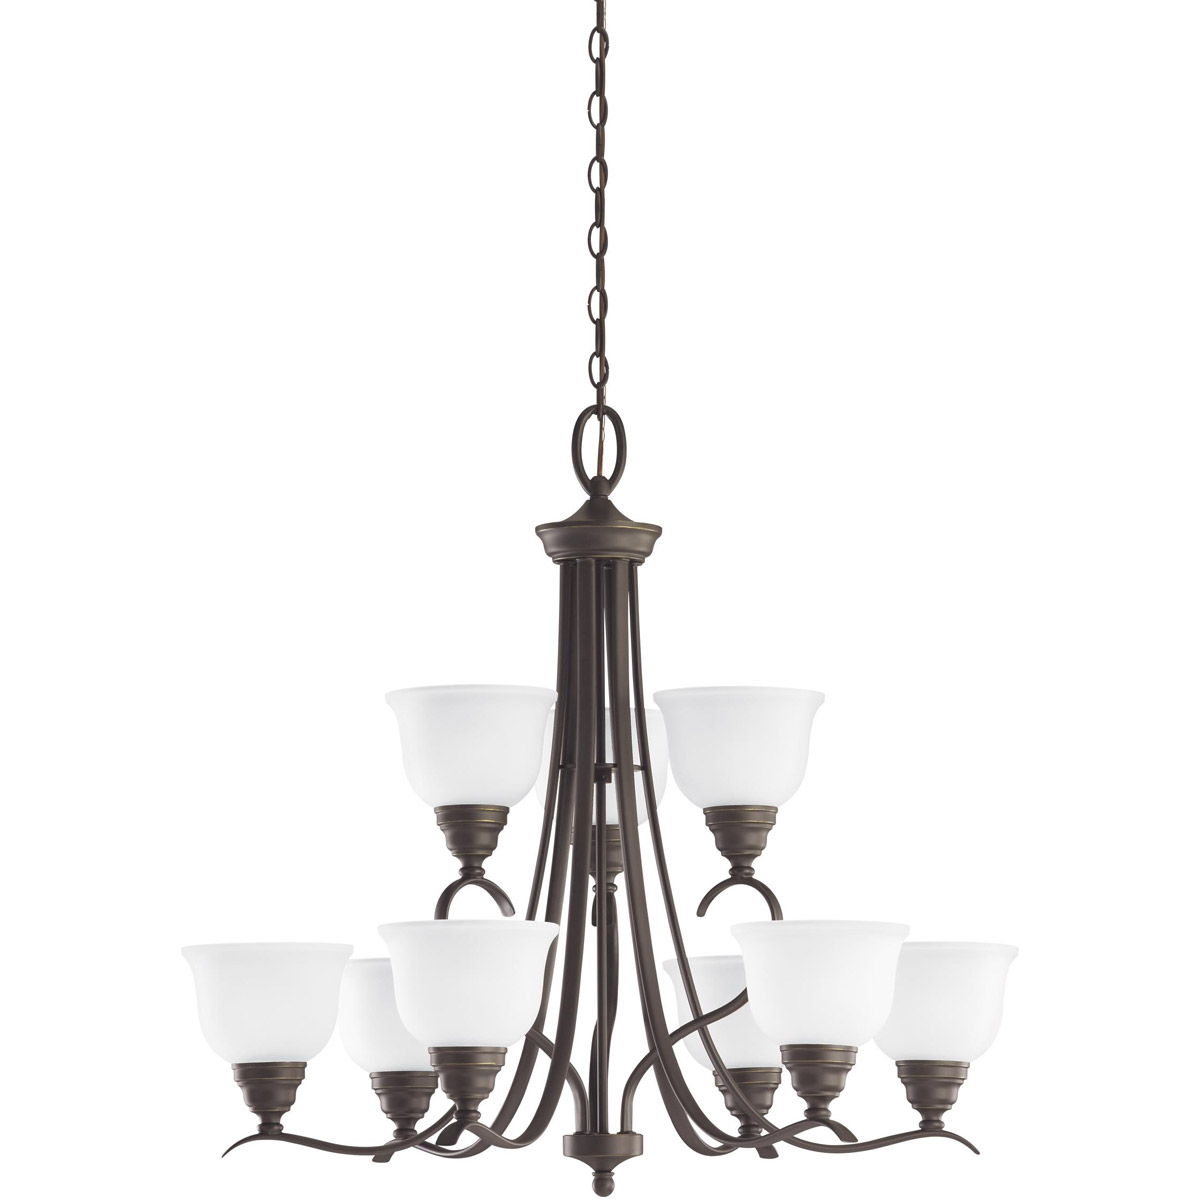 Sea Gull Lighting Wheaton 9 Light Chandelier in Heirloom Bronze 31627-782 photo